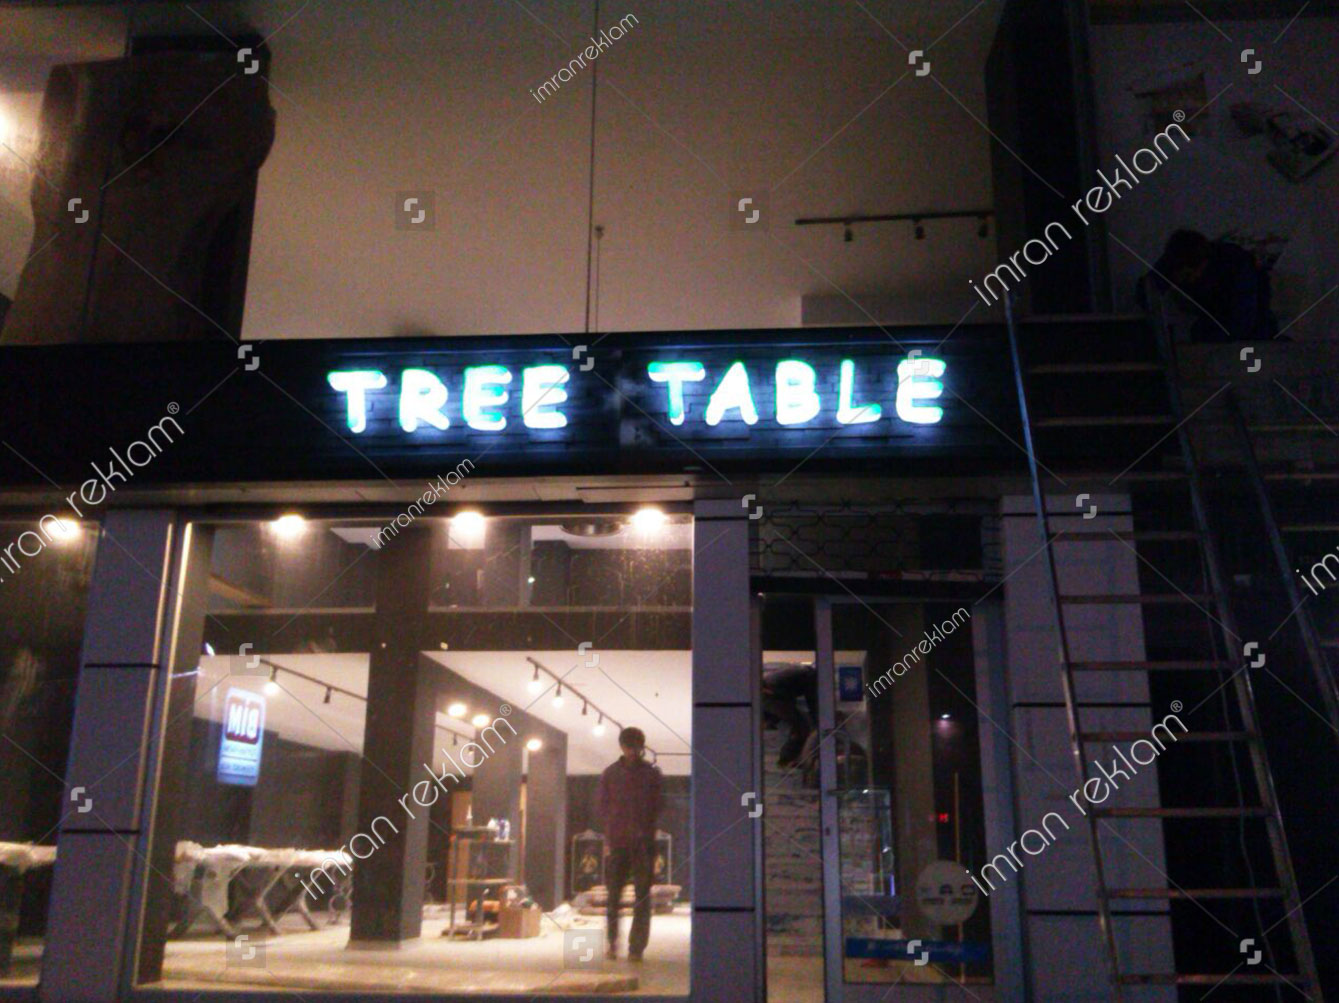 tree-table-kutu-harf